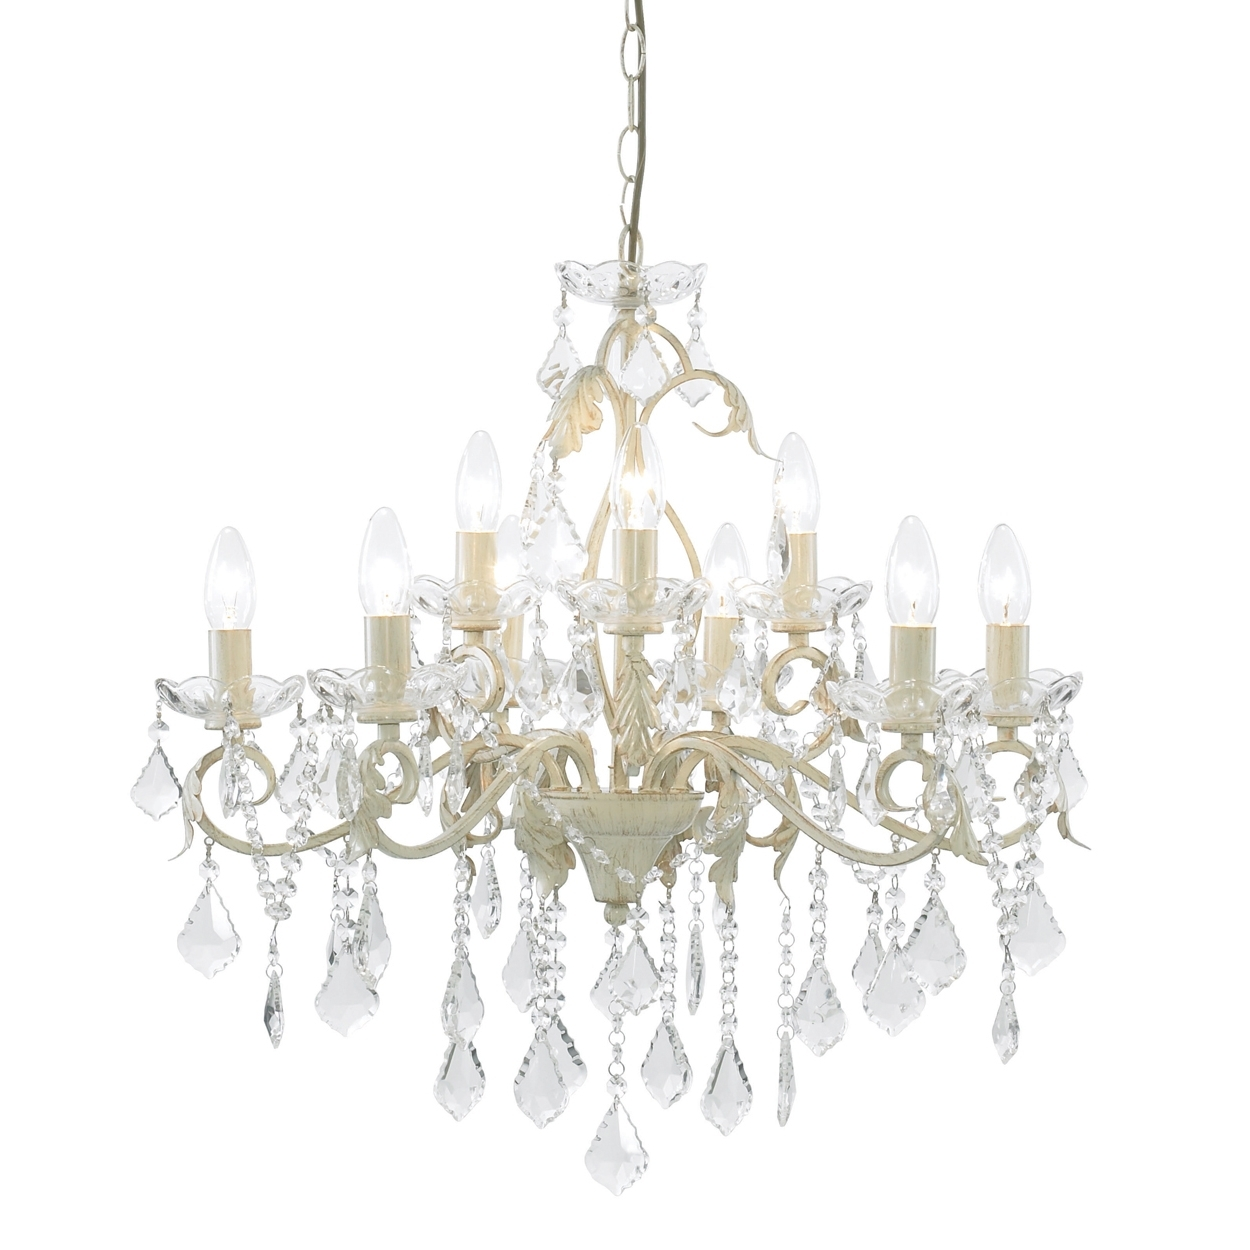 Chandeliers Design : Magnificent Cream And Gold Crystal Chandelier For Favorite Cream Chandeliers (View 2 of 15)